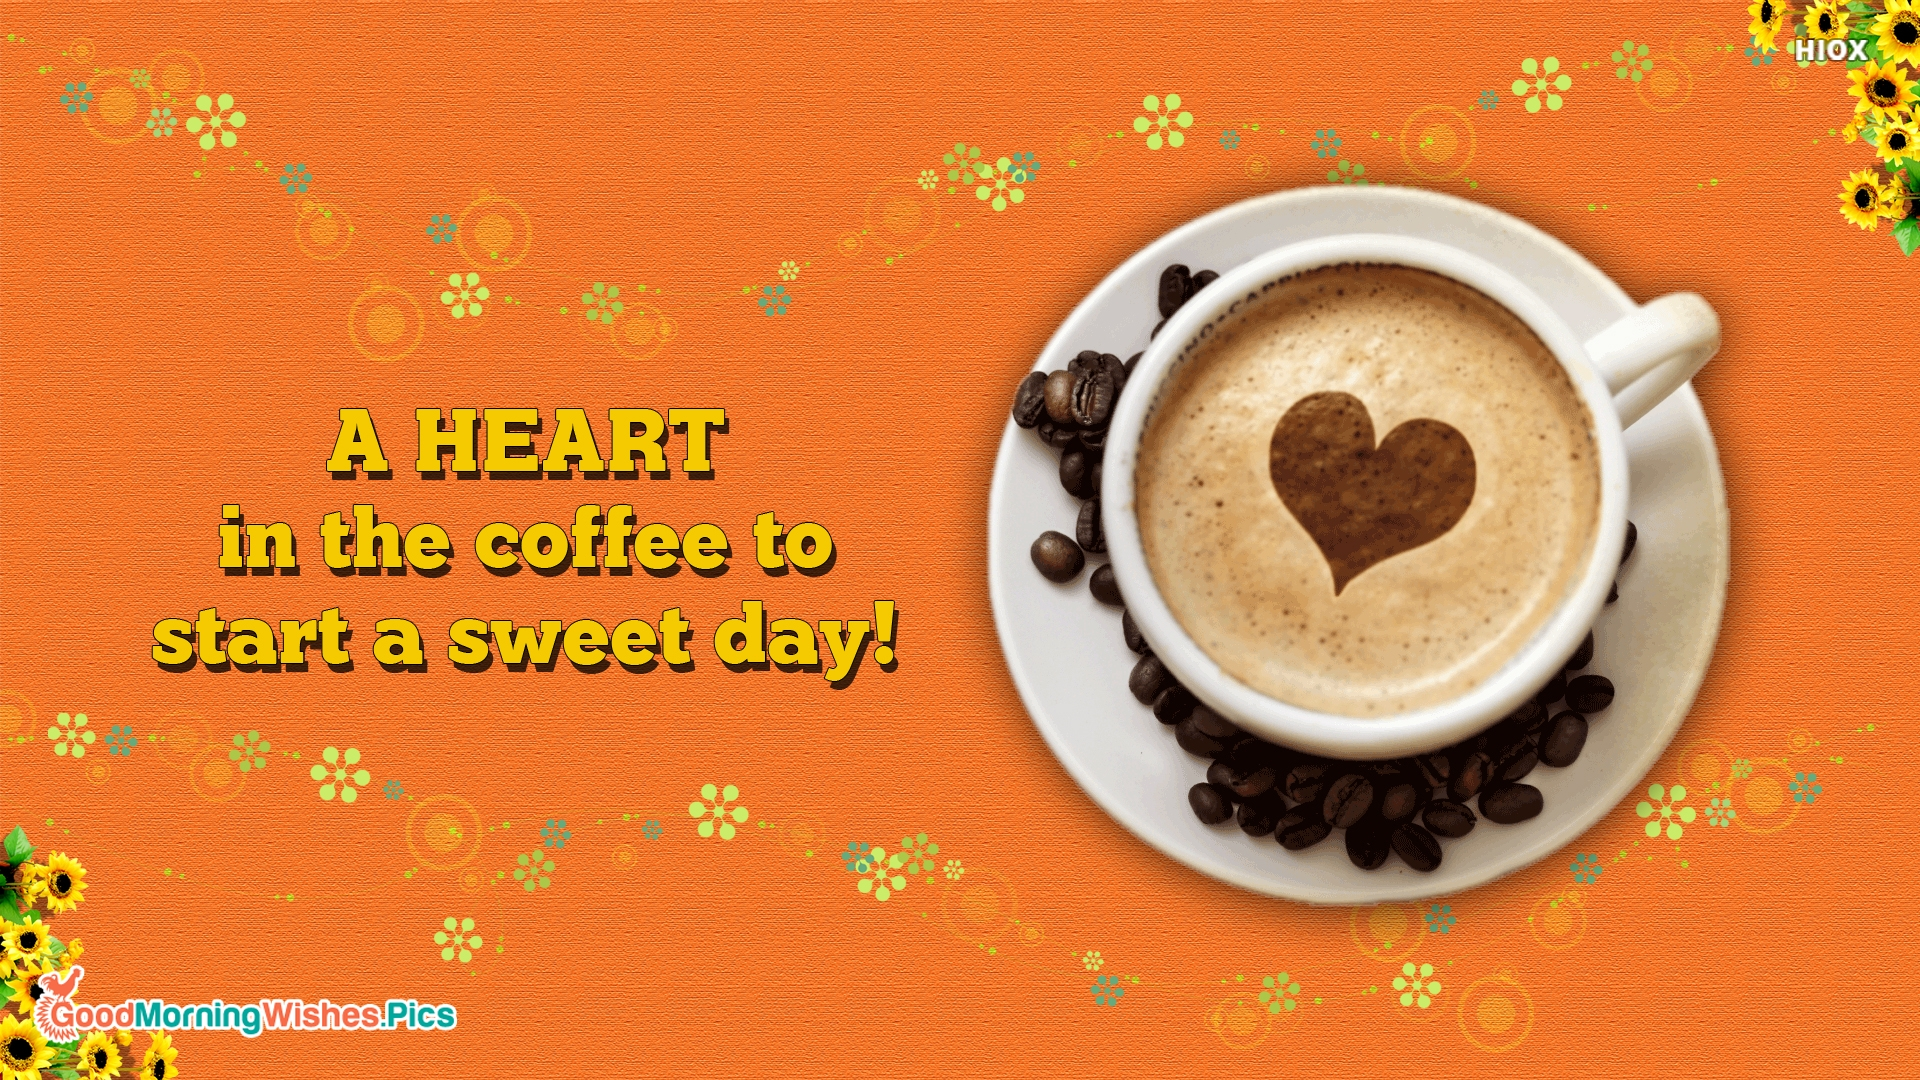 A Heart In The Coffee To Start A Sweet Day!